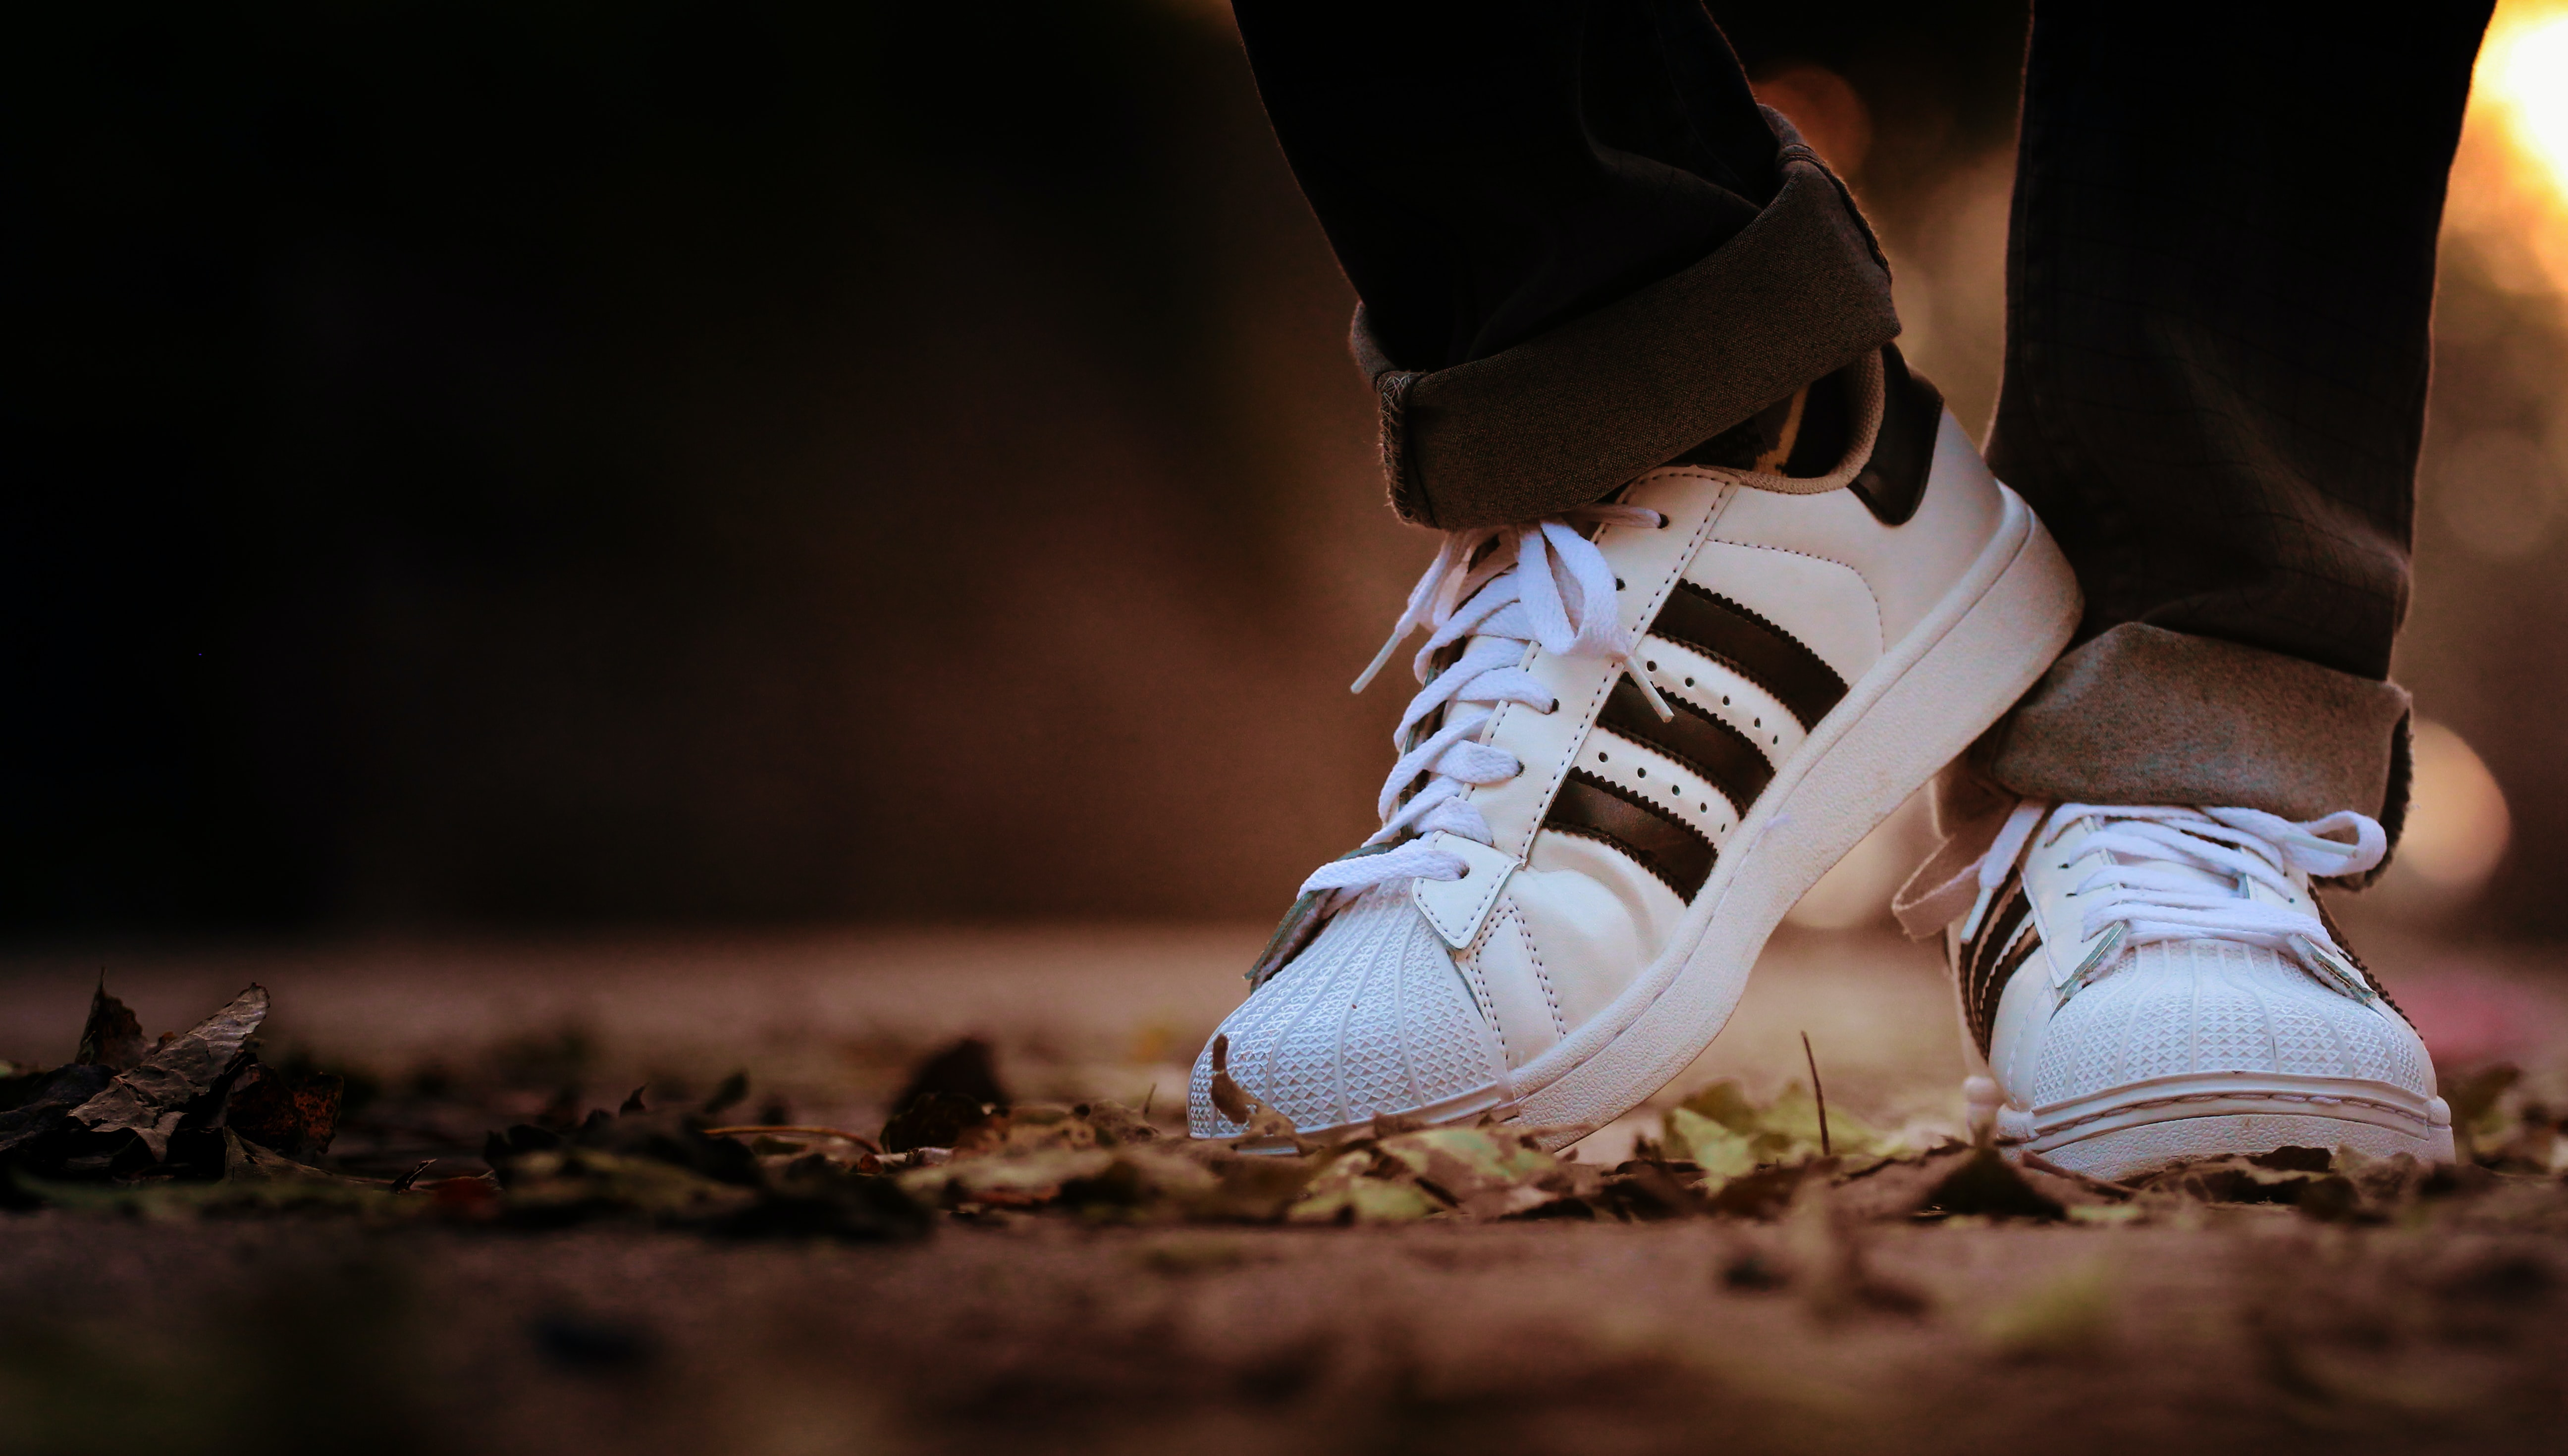 person wearing pair of white adidas Superstar sneakers during daytime